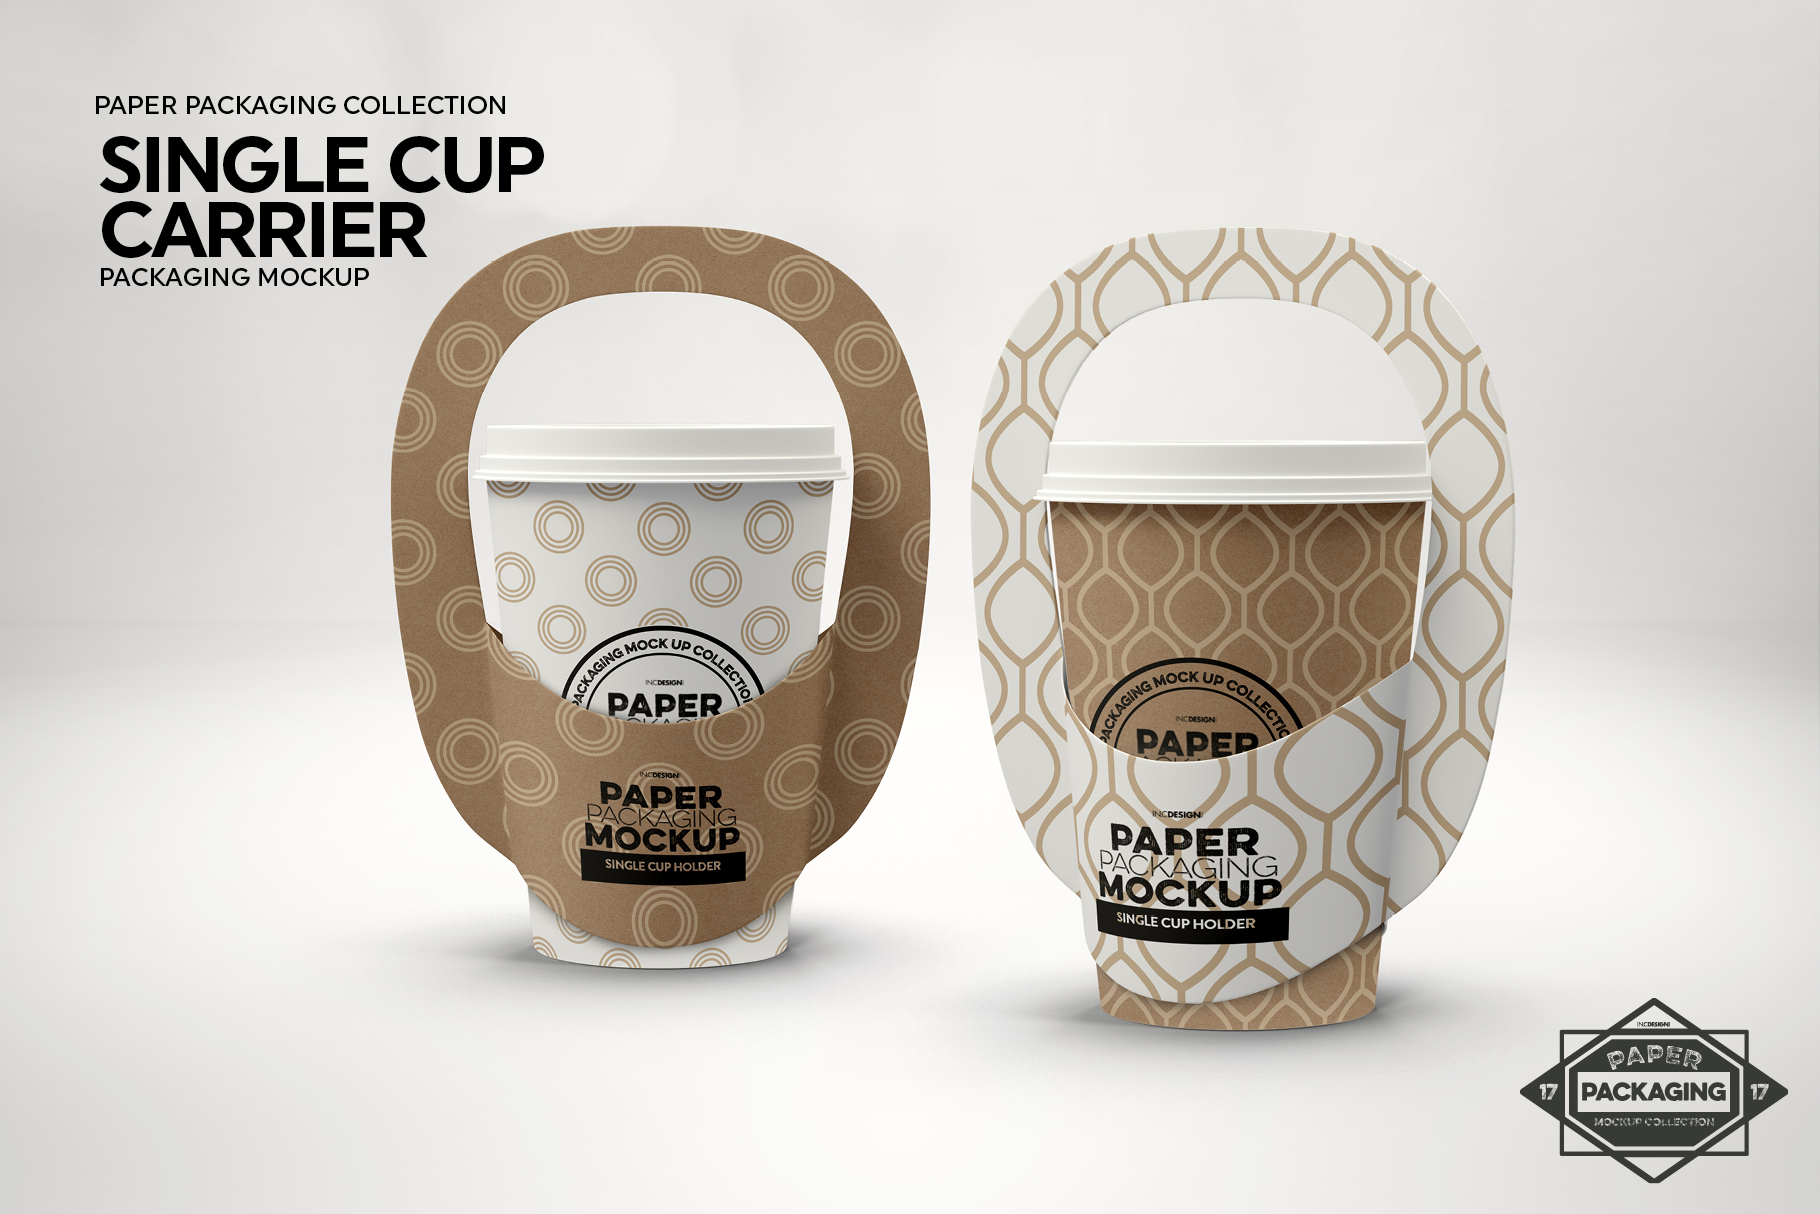 Single Cup Paper Carrier Packaging Mockup example image 6